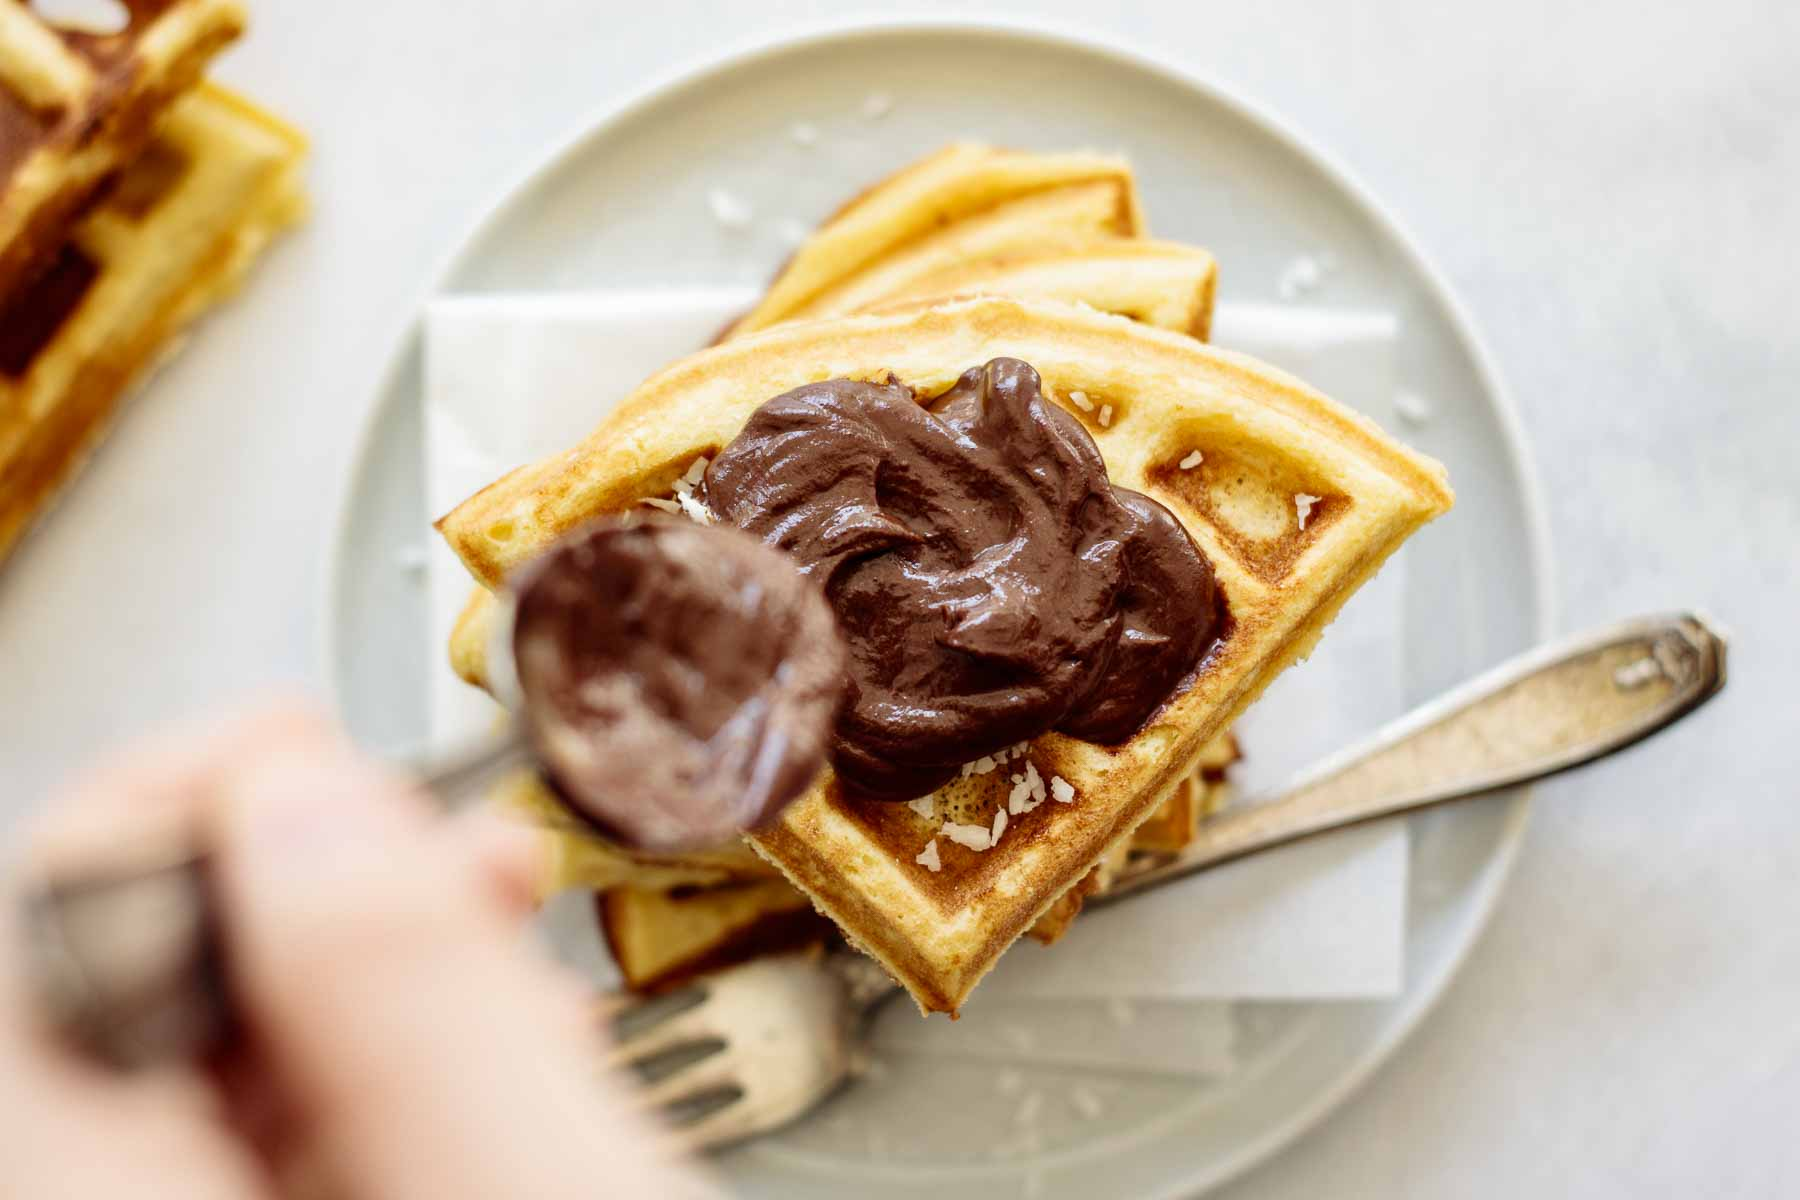 Spoon pouring chocolate ganache over stack of waffles.